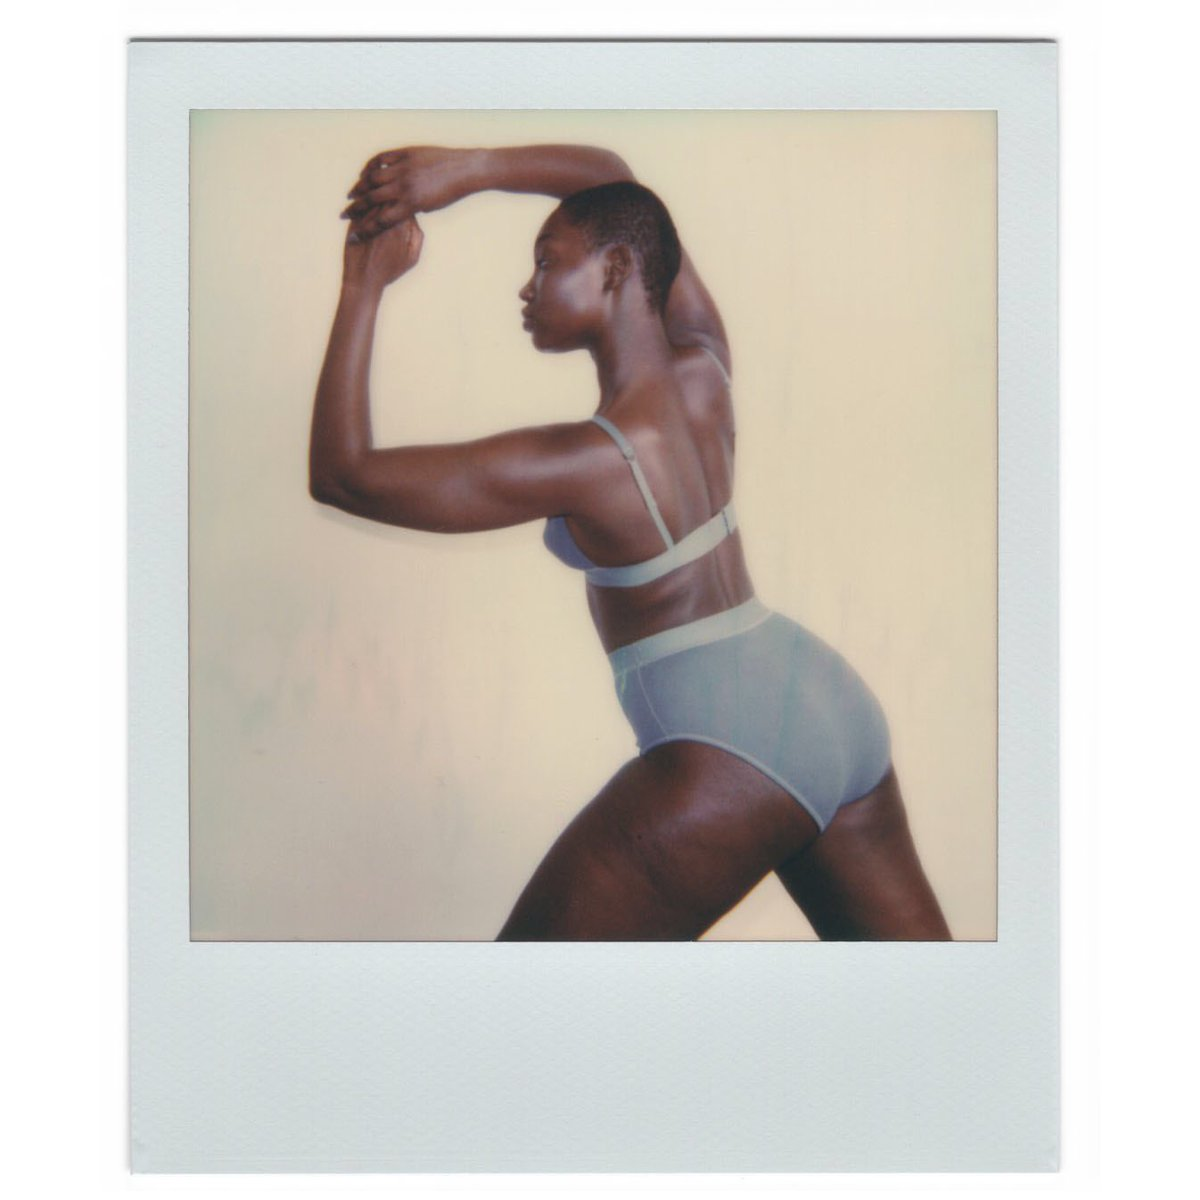 Breathable and comfortable, the @skims  Cotton Collection is your new essential for underwear and lounge. Shop the Cotton Collection October 15 at 9AM PST / 12PM EST and join the waitlist now to shop before it sells out. Photo: #VanessaBeecroft